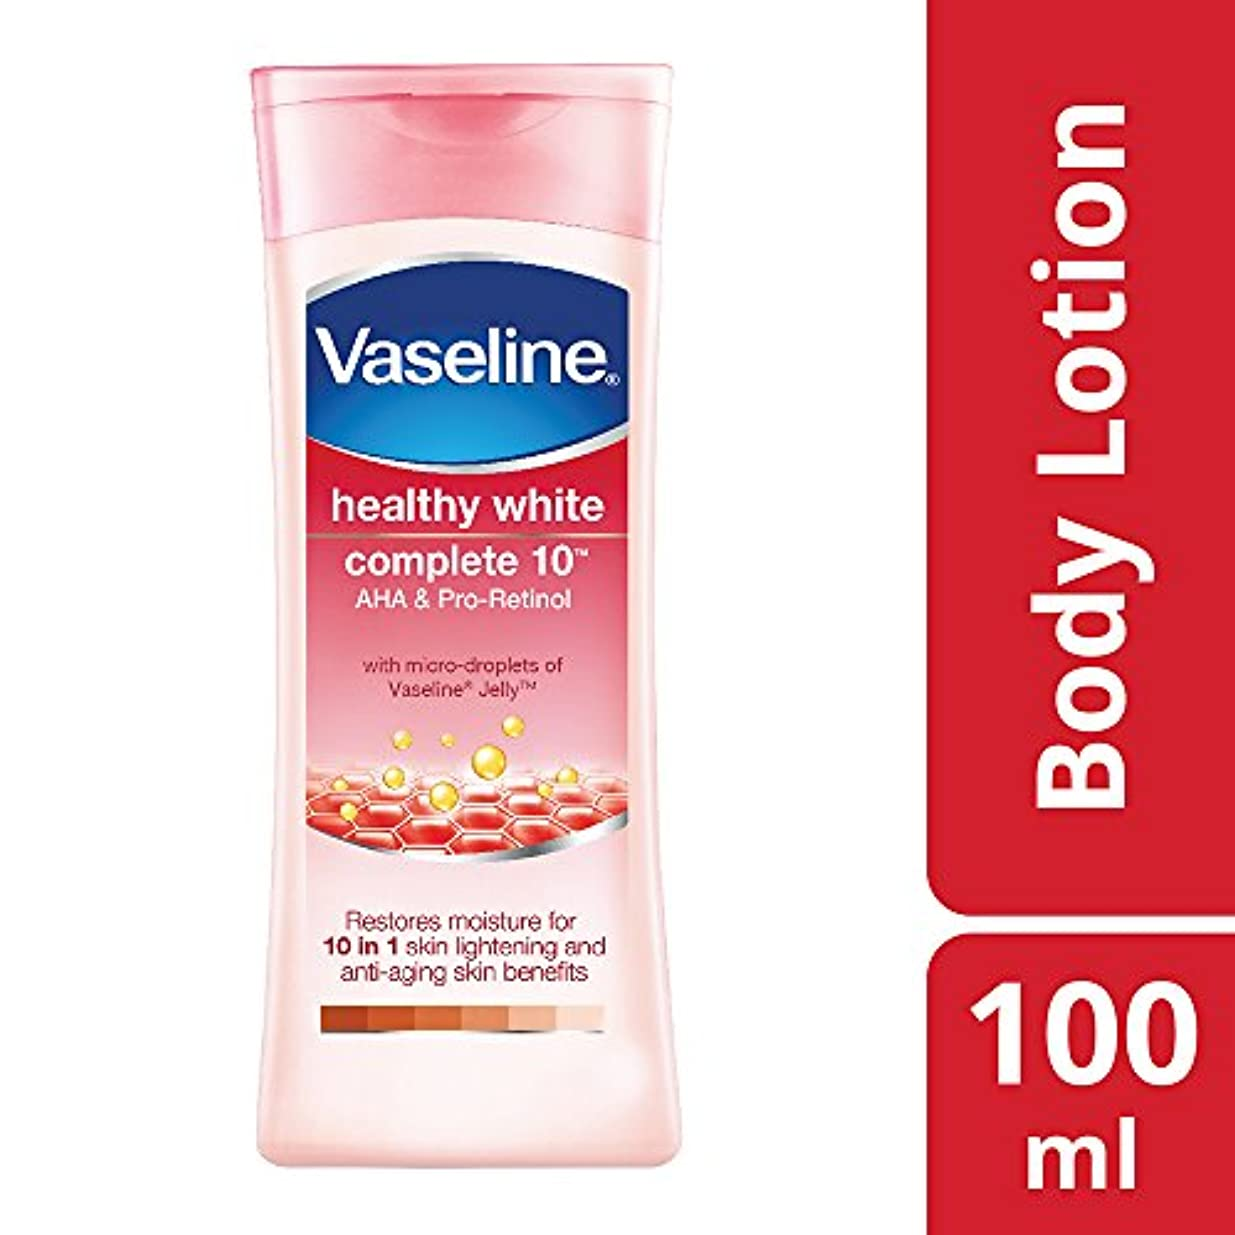 ファーザーファージュマリナードームVaseline Healthy White Complete 10 Body Lotion, 100 ml